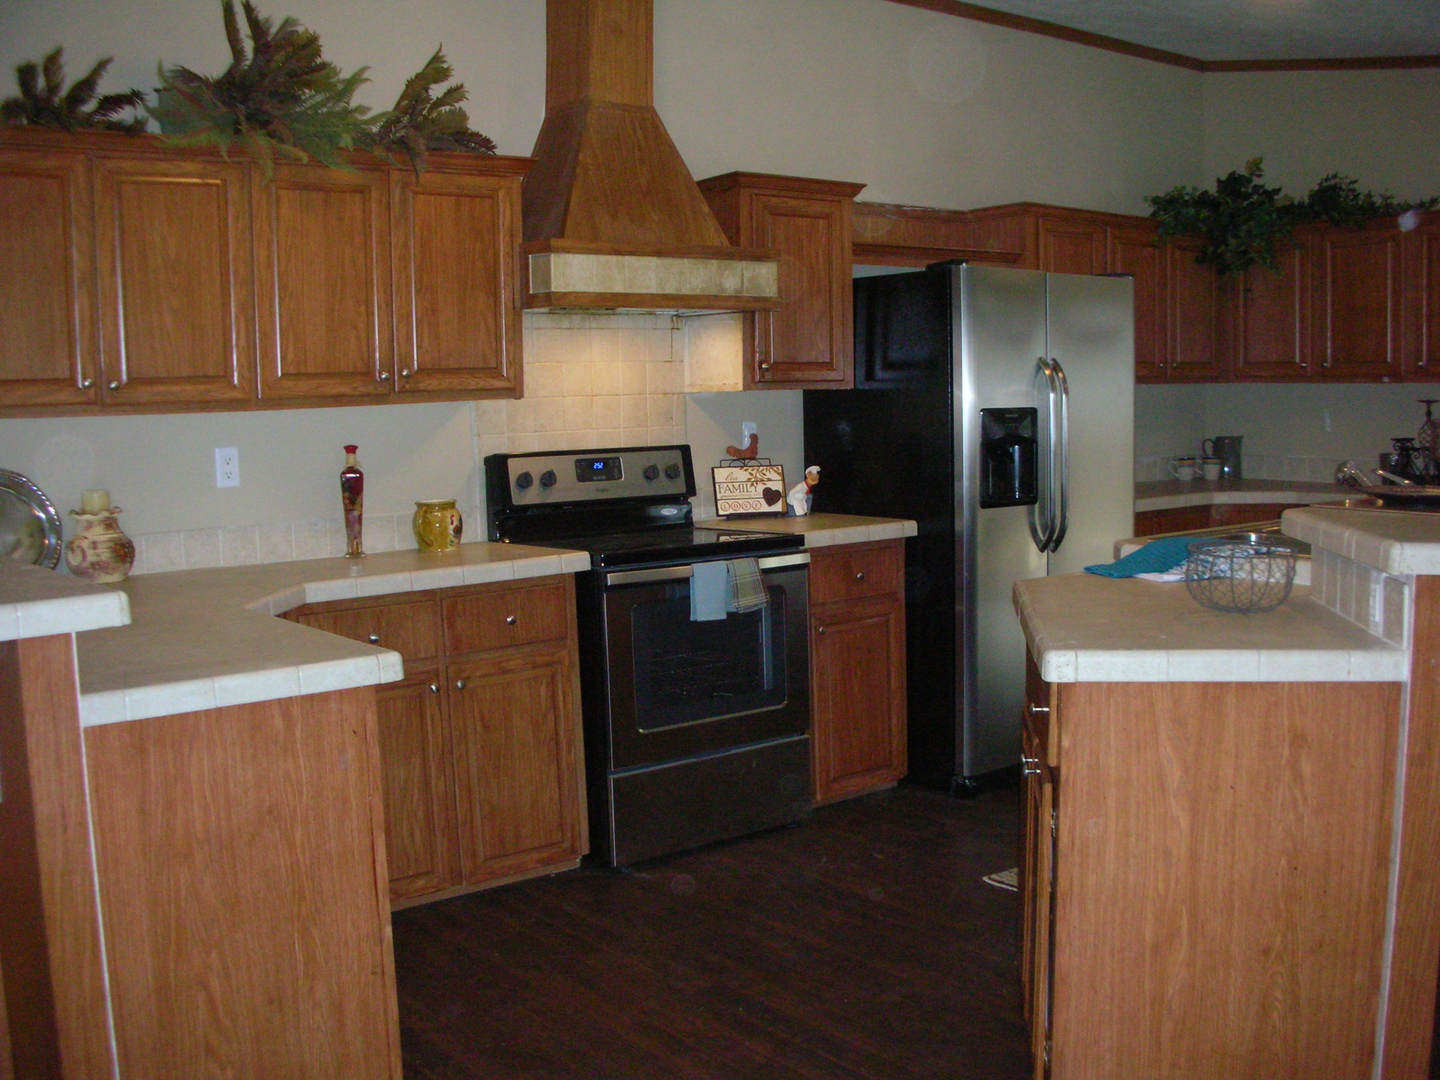 Spring Branch land and home kitchen view